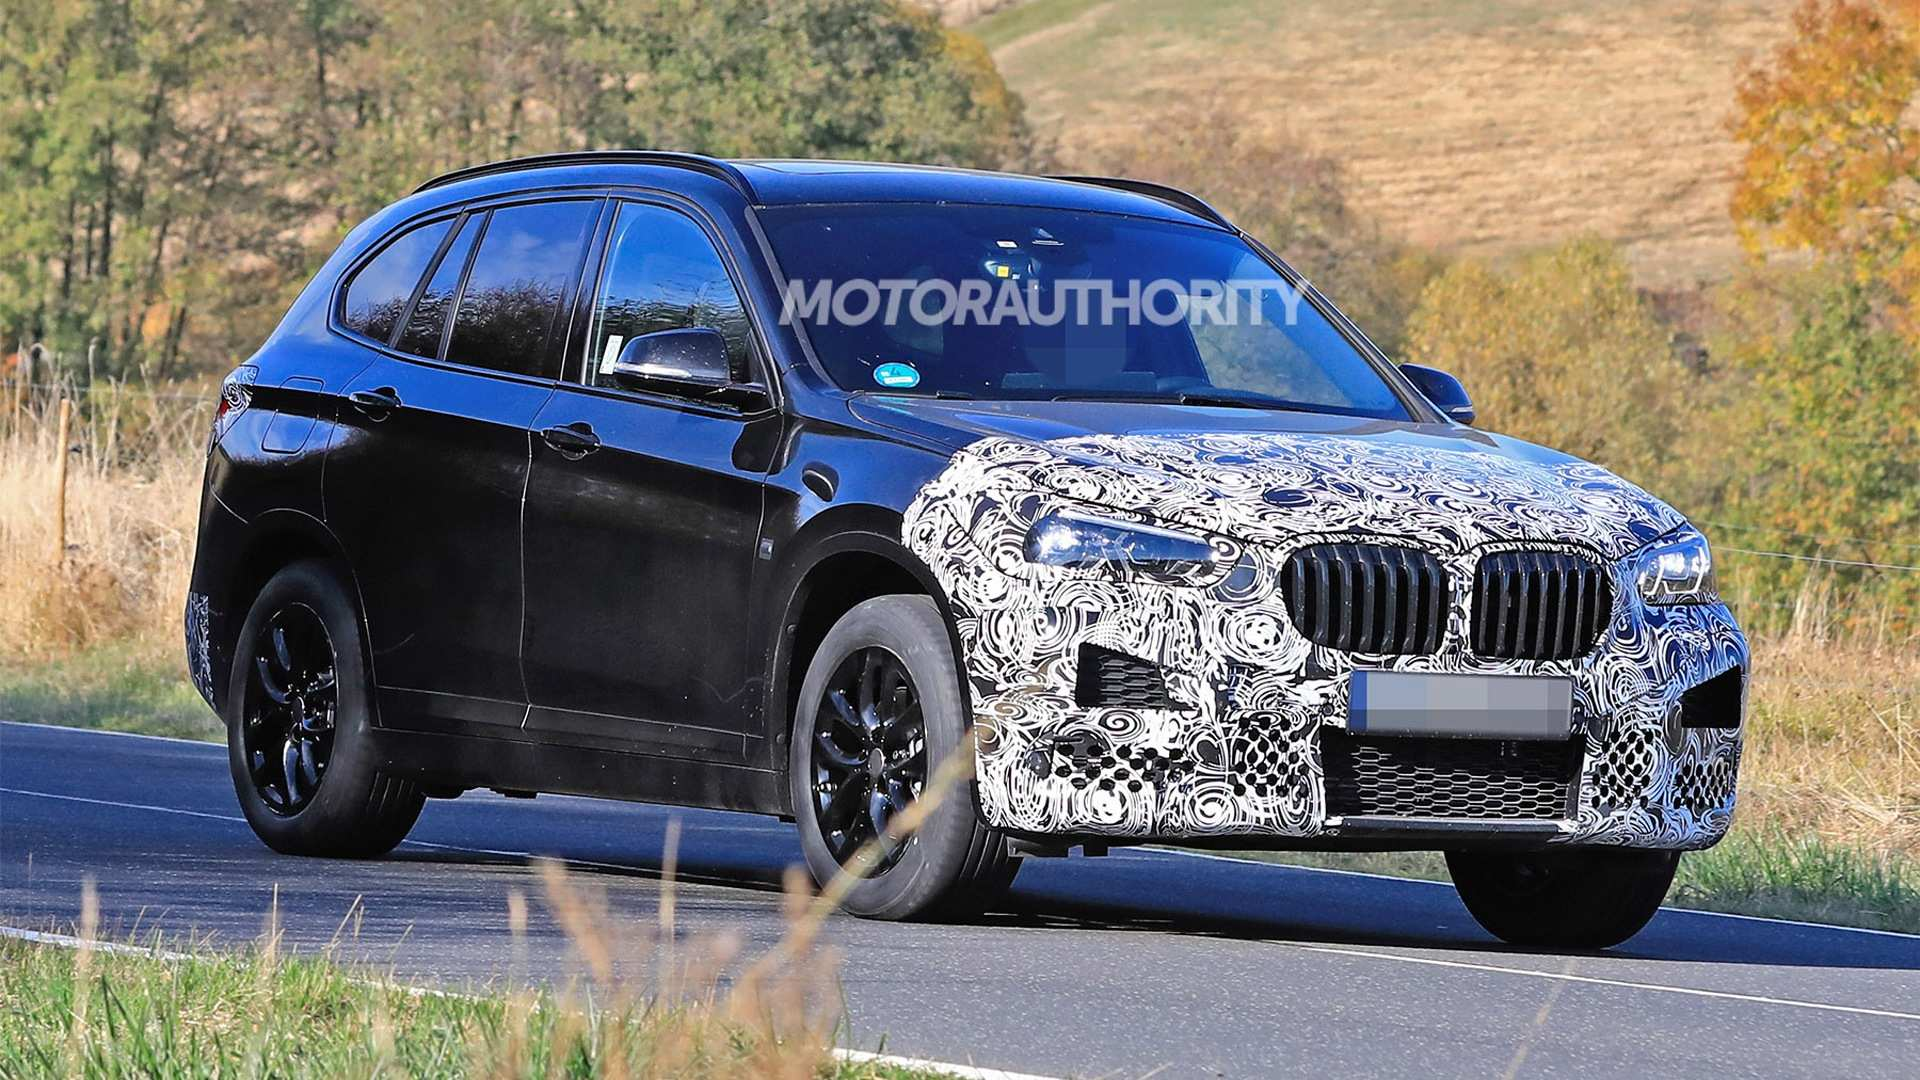 89 Best Review Bmw X1 2020 Facelift Price by Bmw X1 2020 Facelift